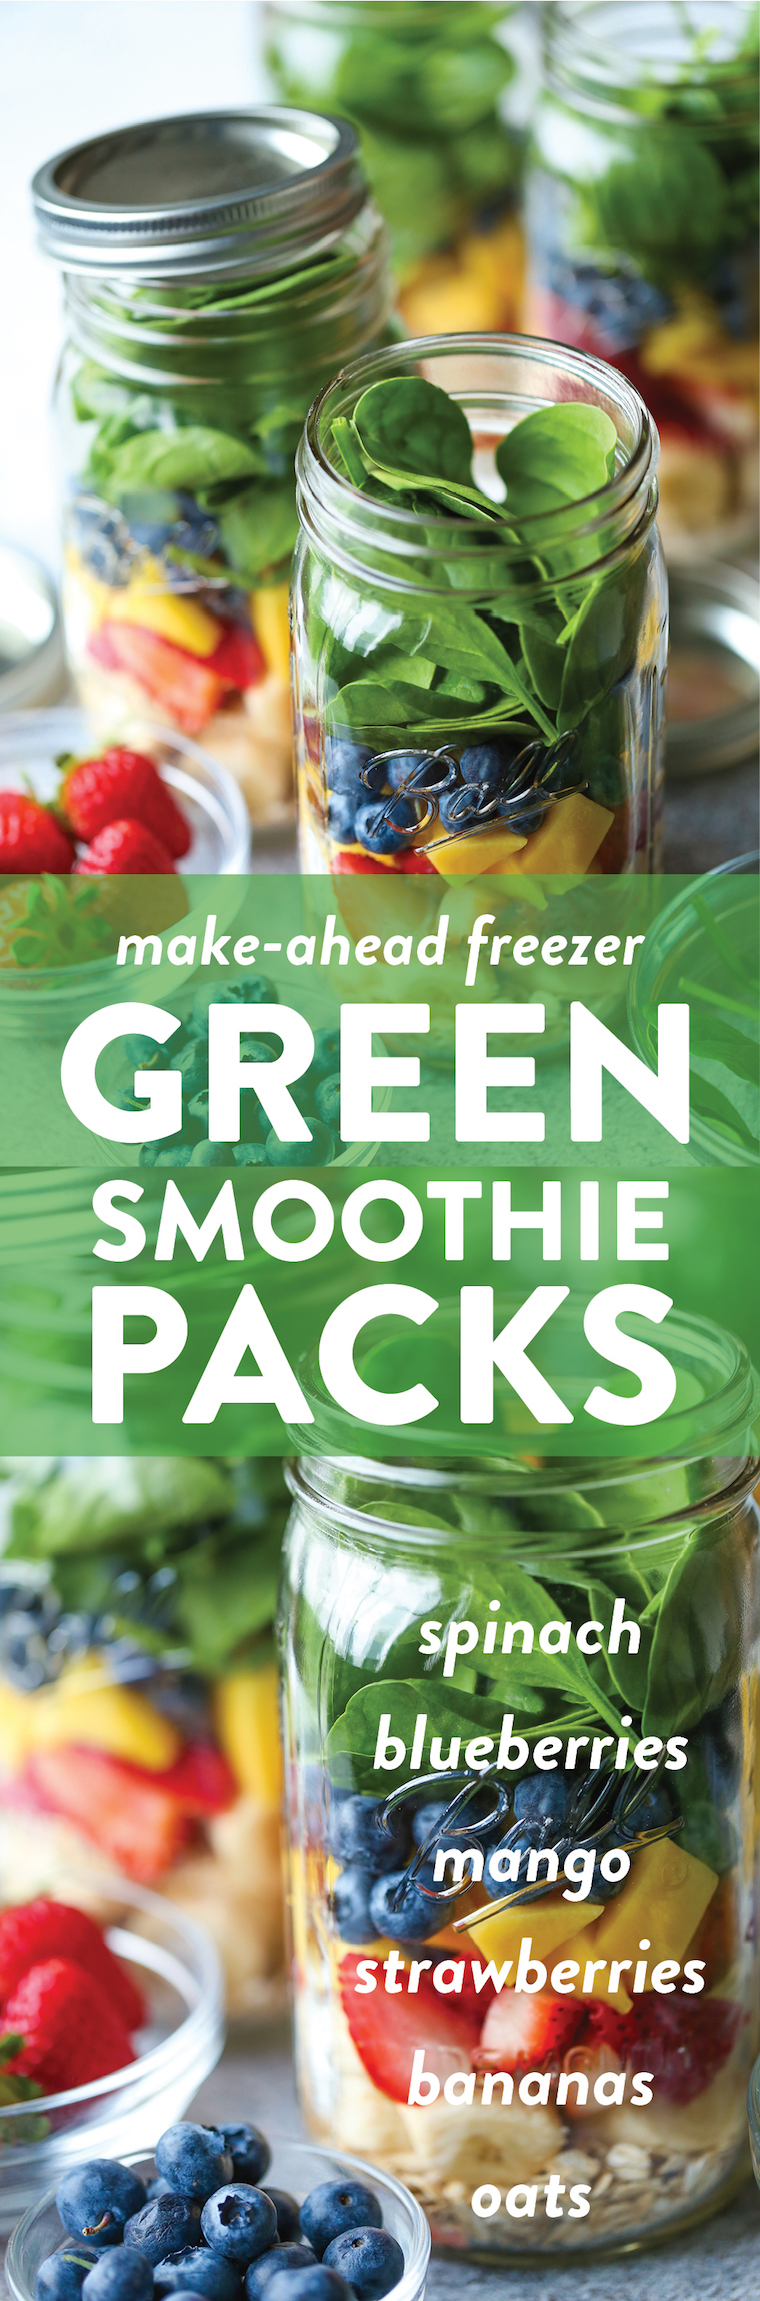 Freezer Green Smoothie Packs - Make-ahead freezer-packs! Now you have ready-made smoothies for the entire week. Simply add your milk and blend! That's it!